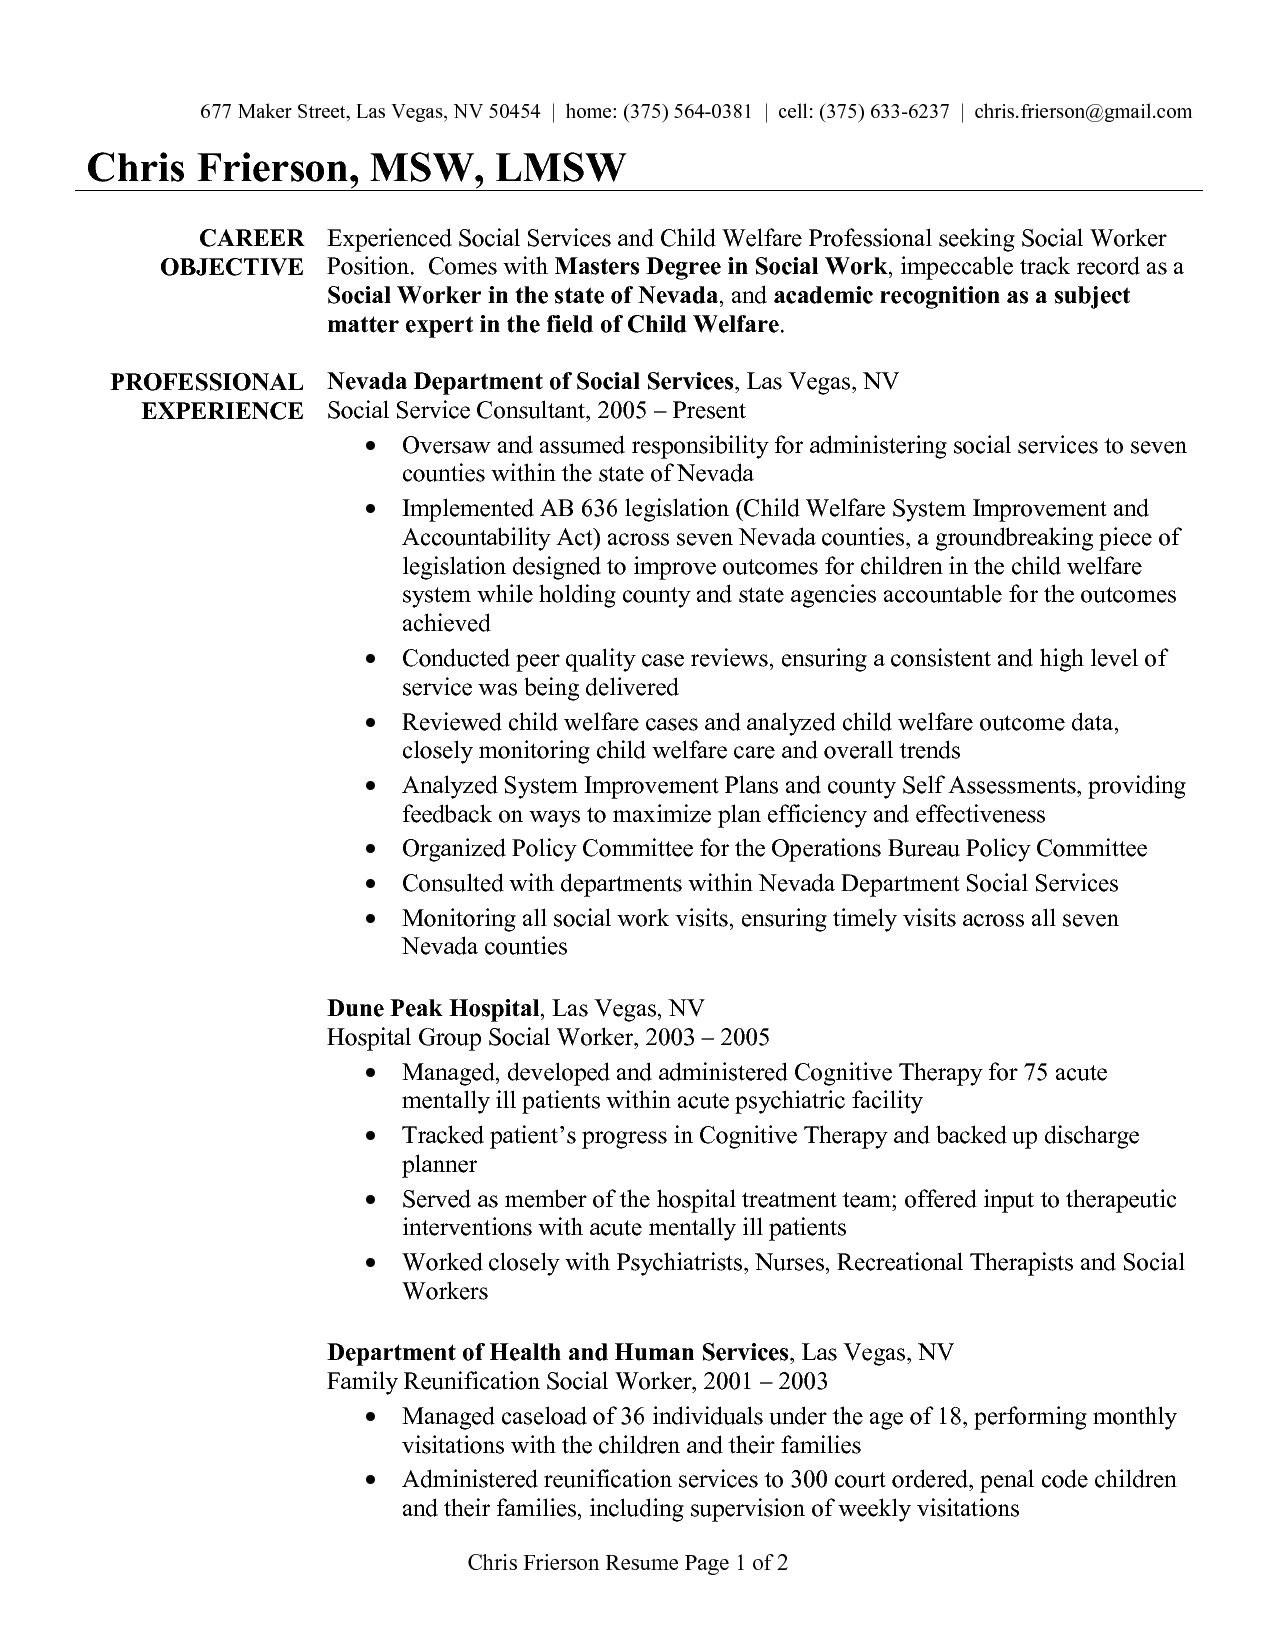 Trailer Driver Resume Sample ResumecompanionCom  Larry Paul